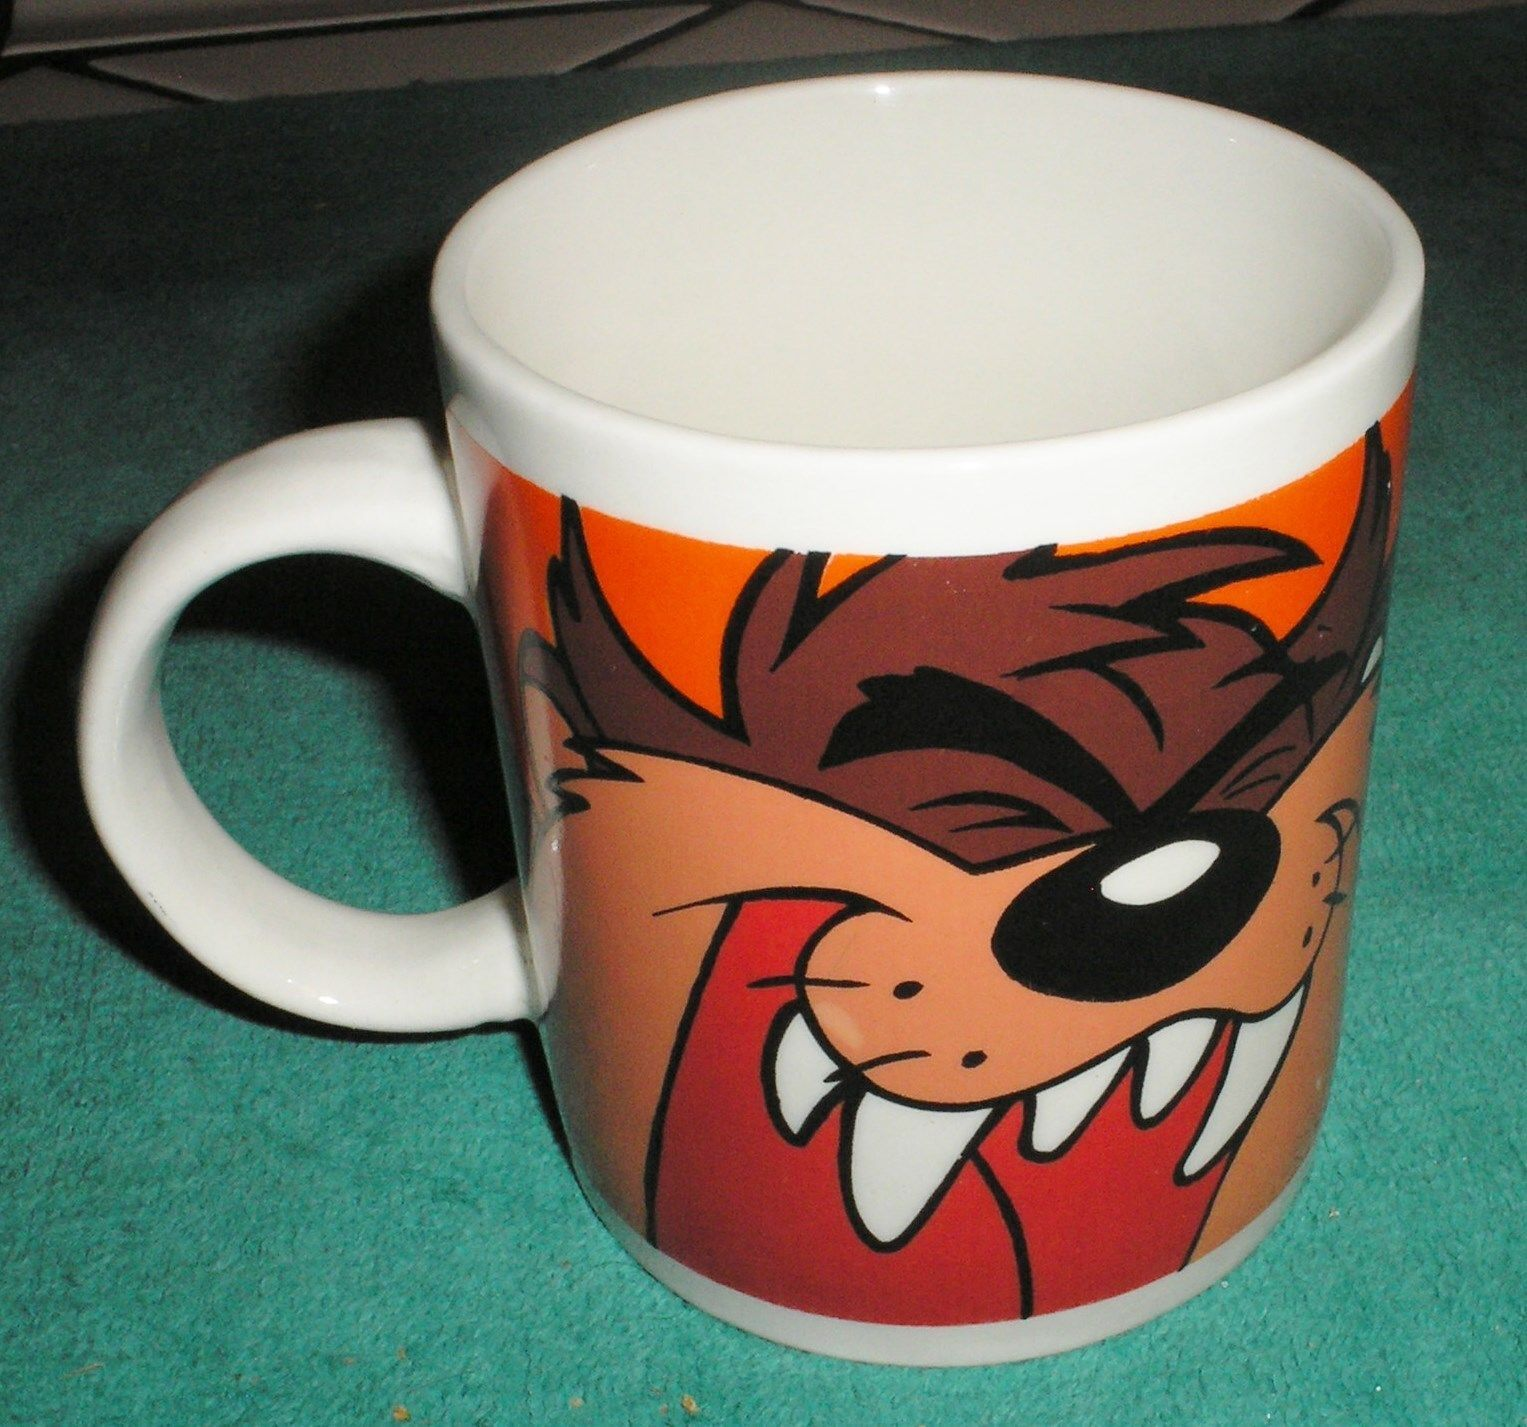 Looney Toons Taz Ceramic Mug Coffee Cup Warner Bros 2000 Collectible